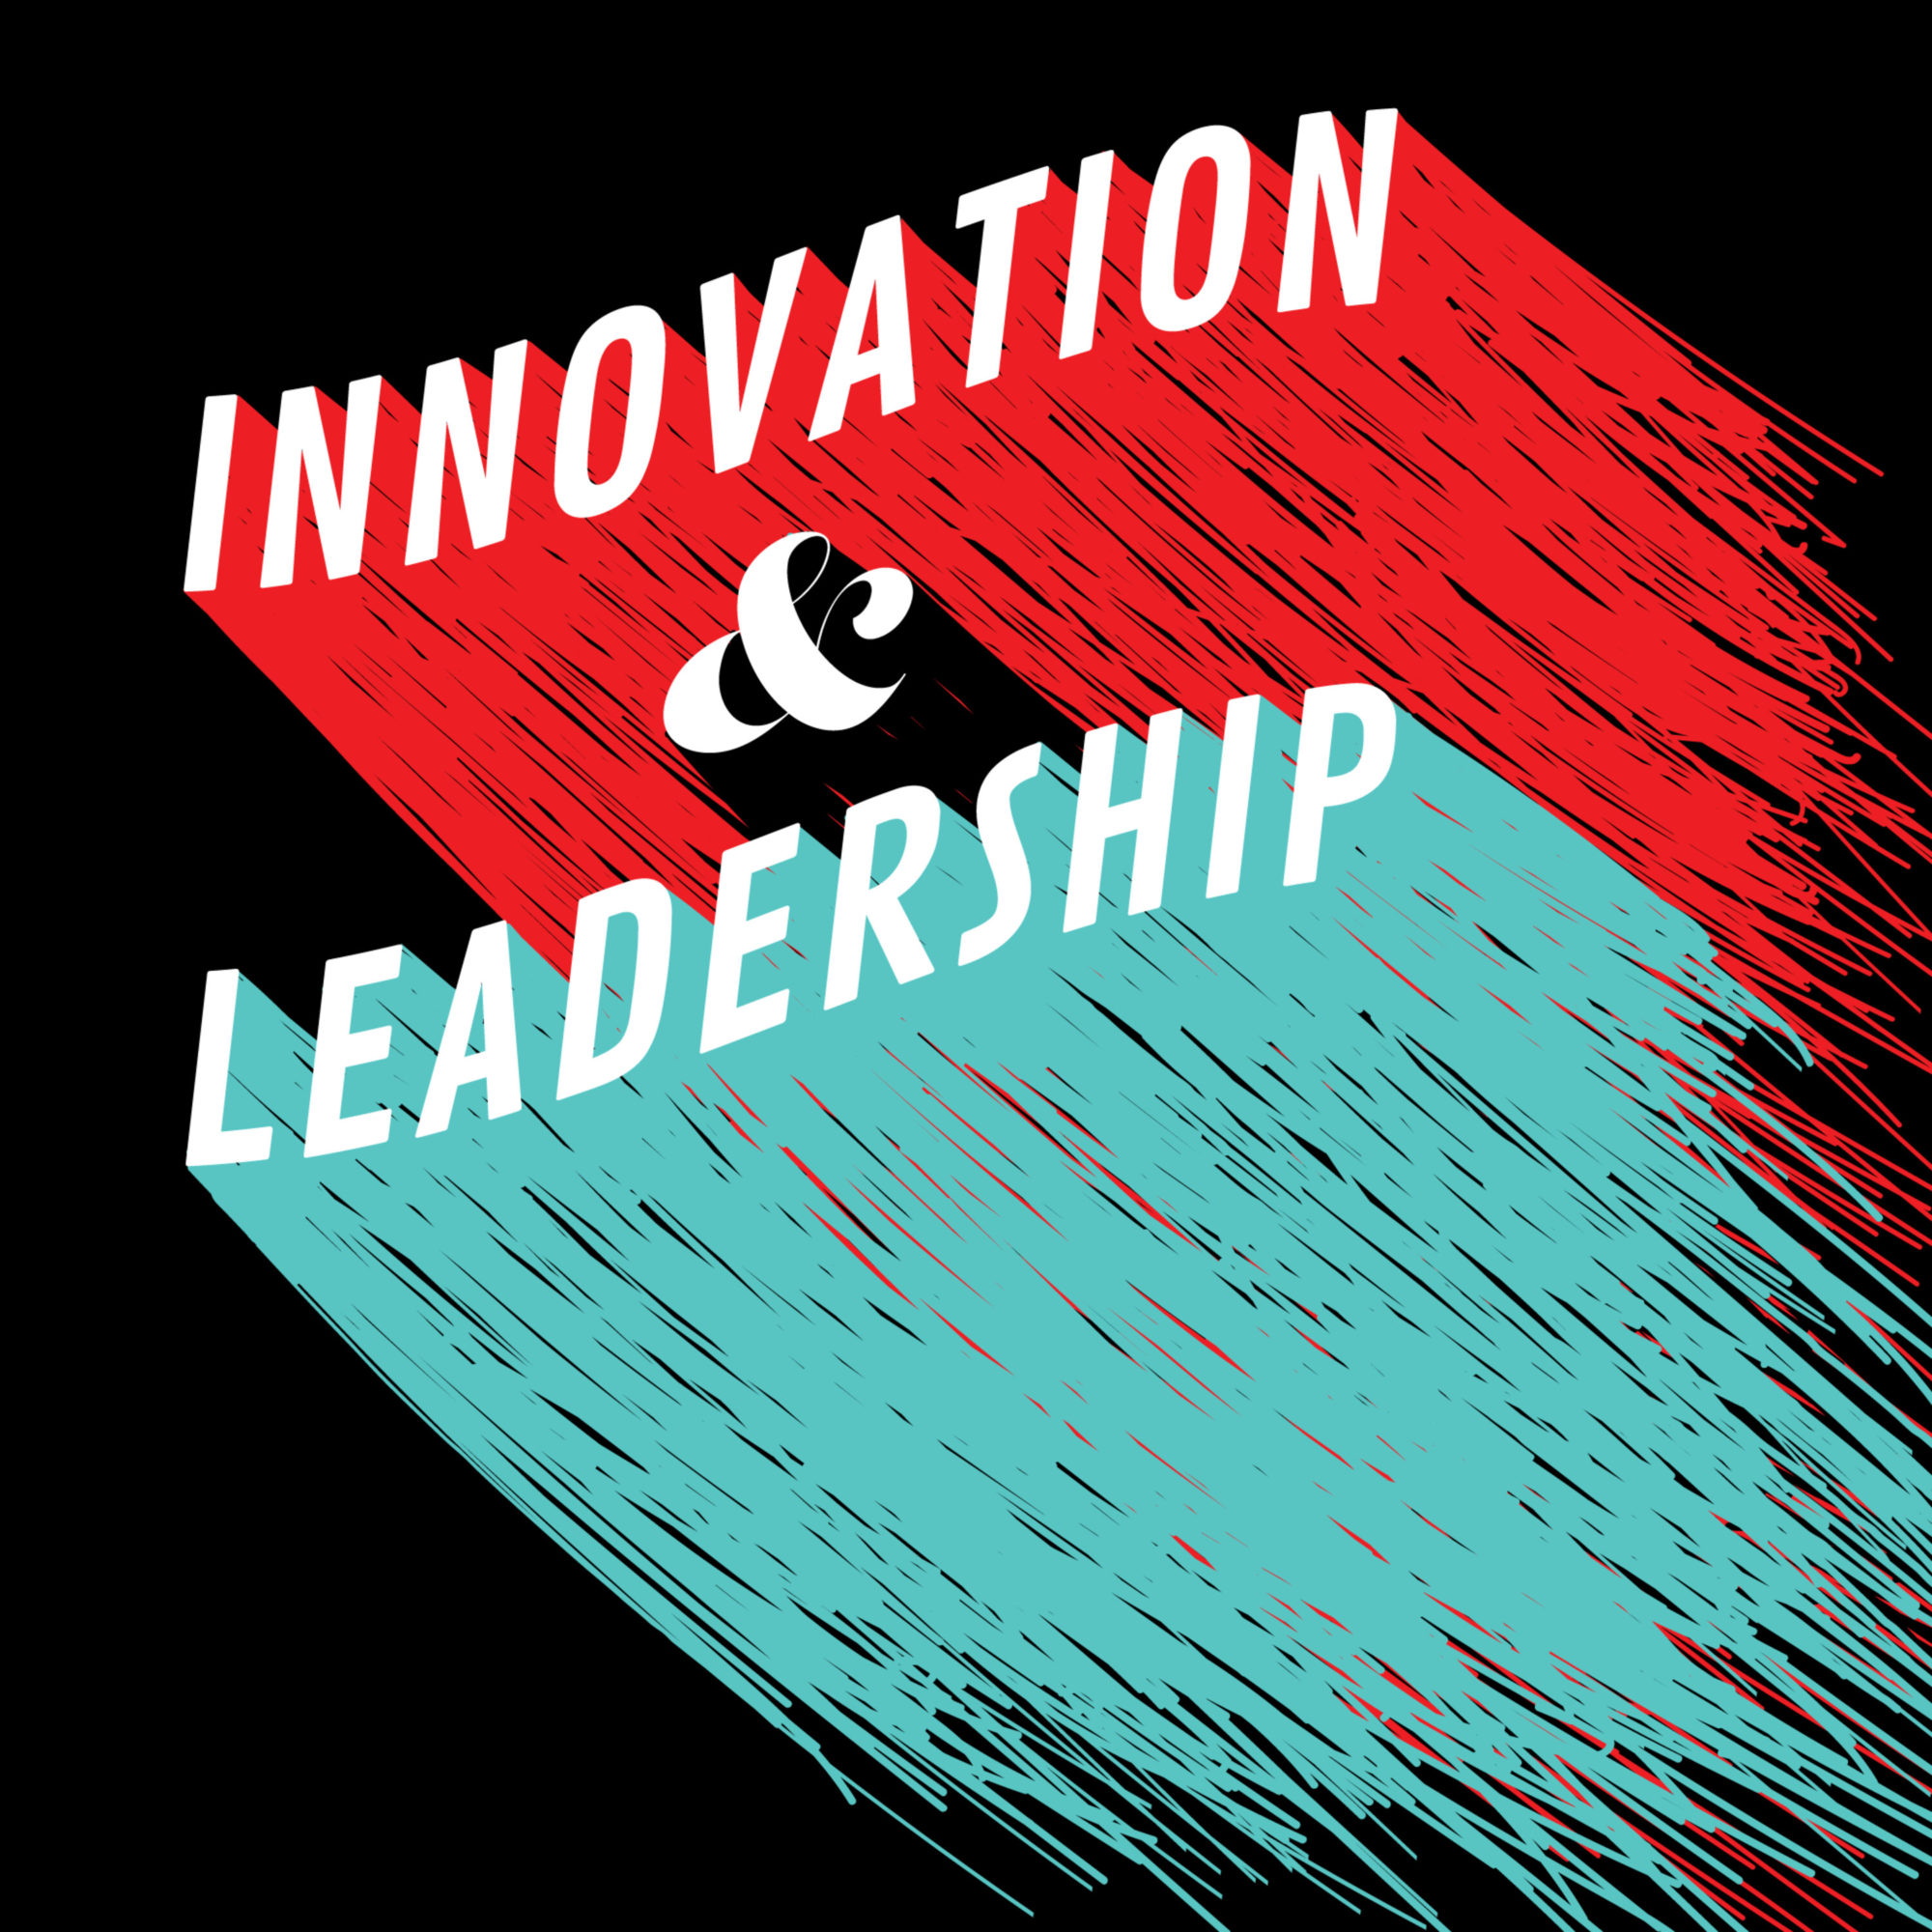 Joel's interview on the Innovation and Leadership Podcast